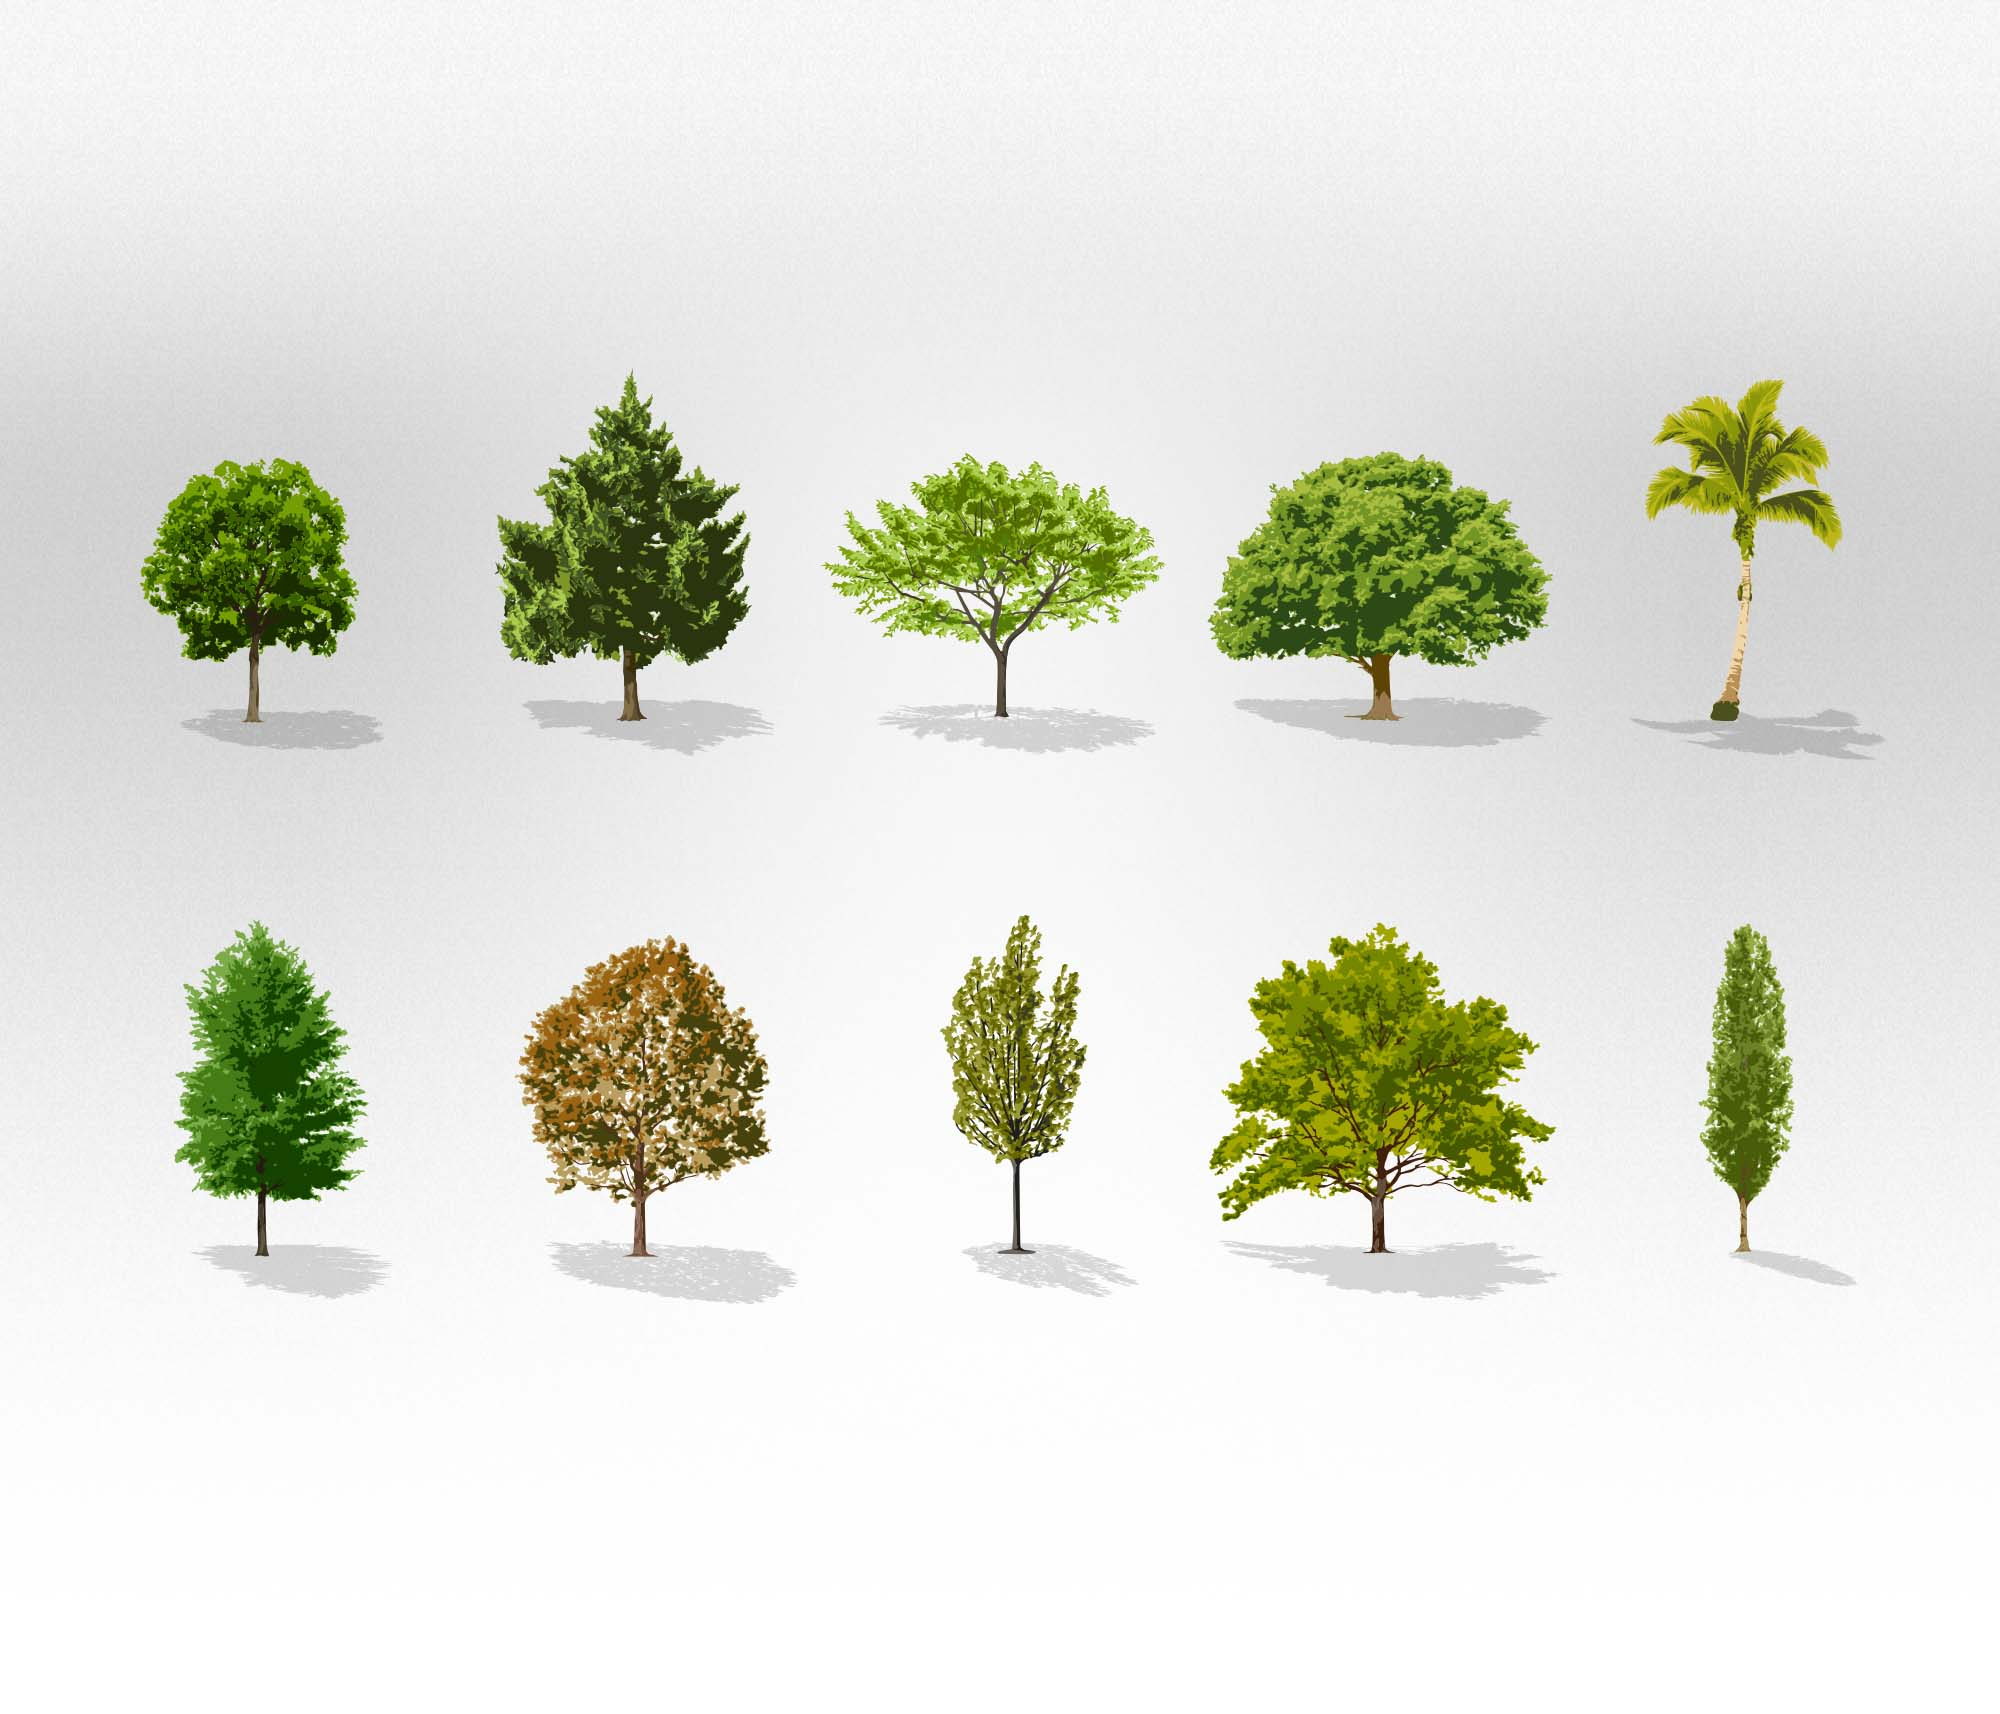 free vector trees collection